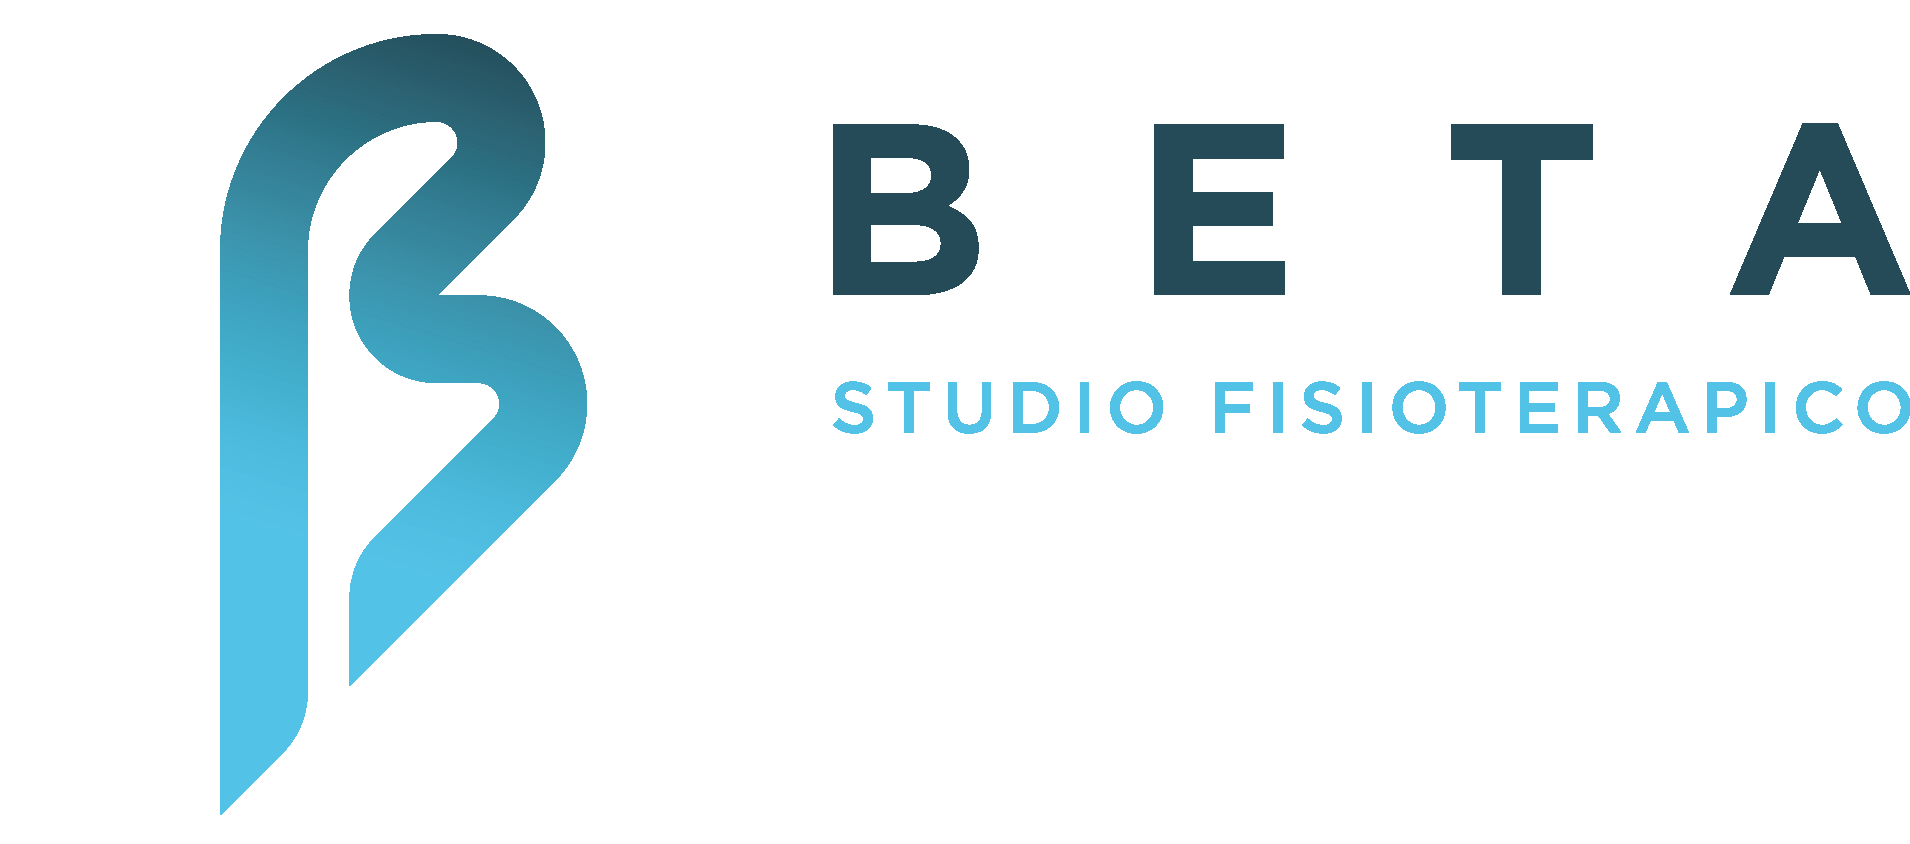 Studio Fisioterapico beta